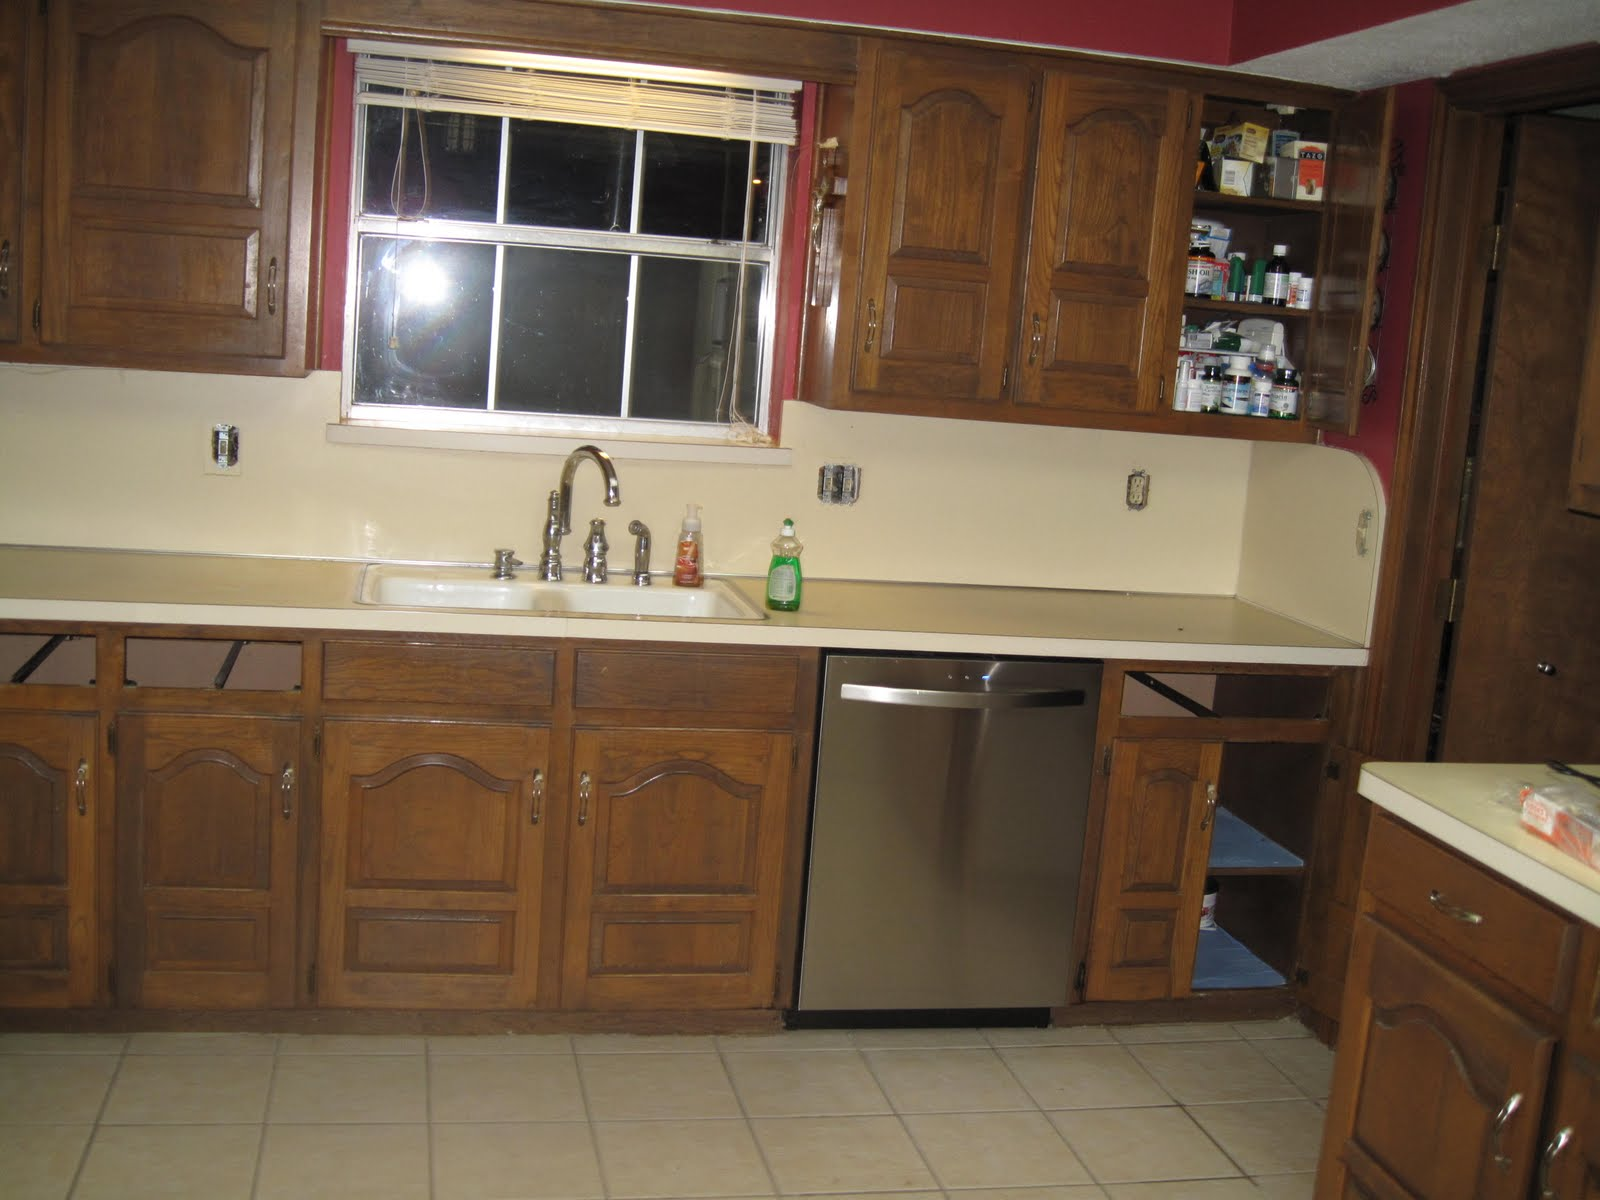 after 21 years of formica countertops and backsplash